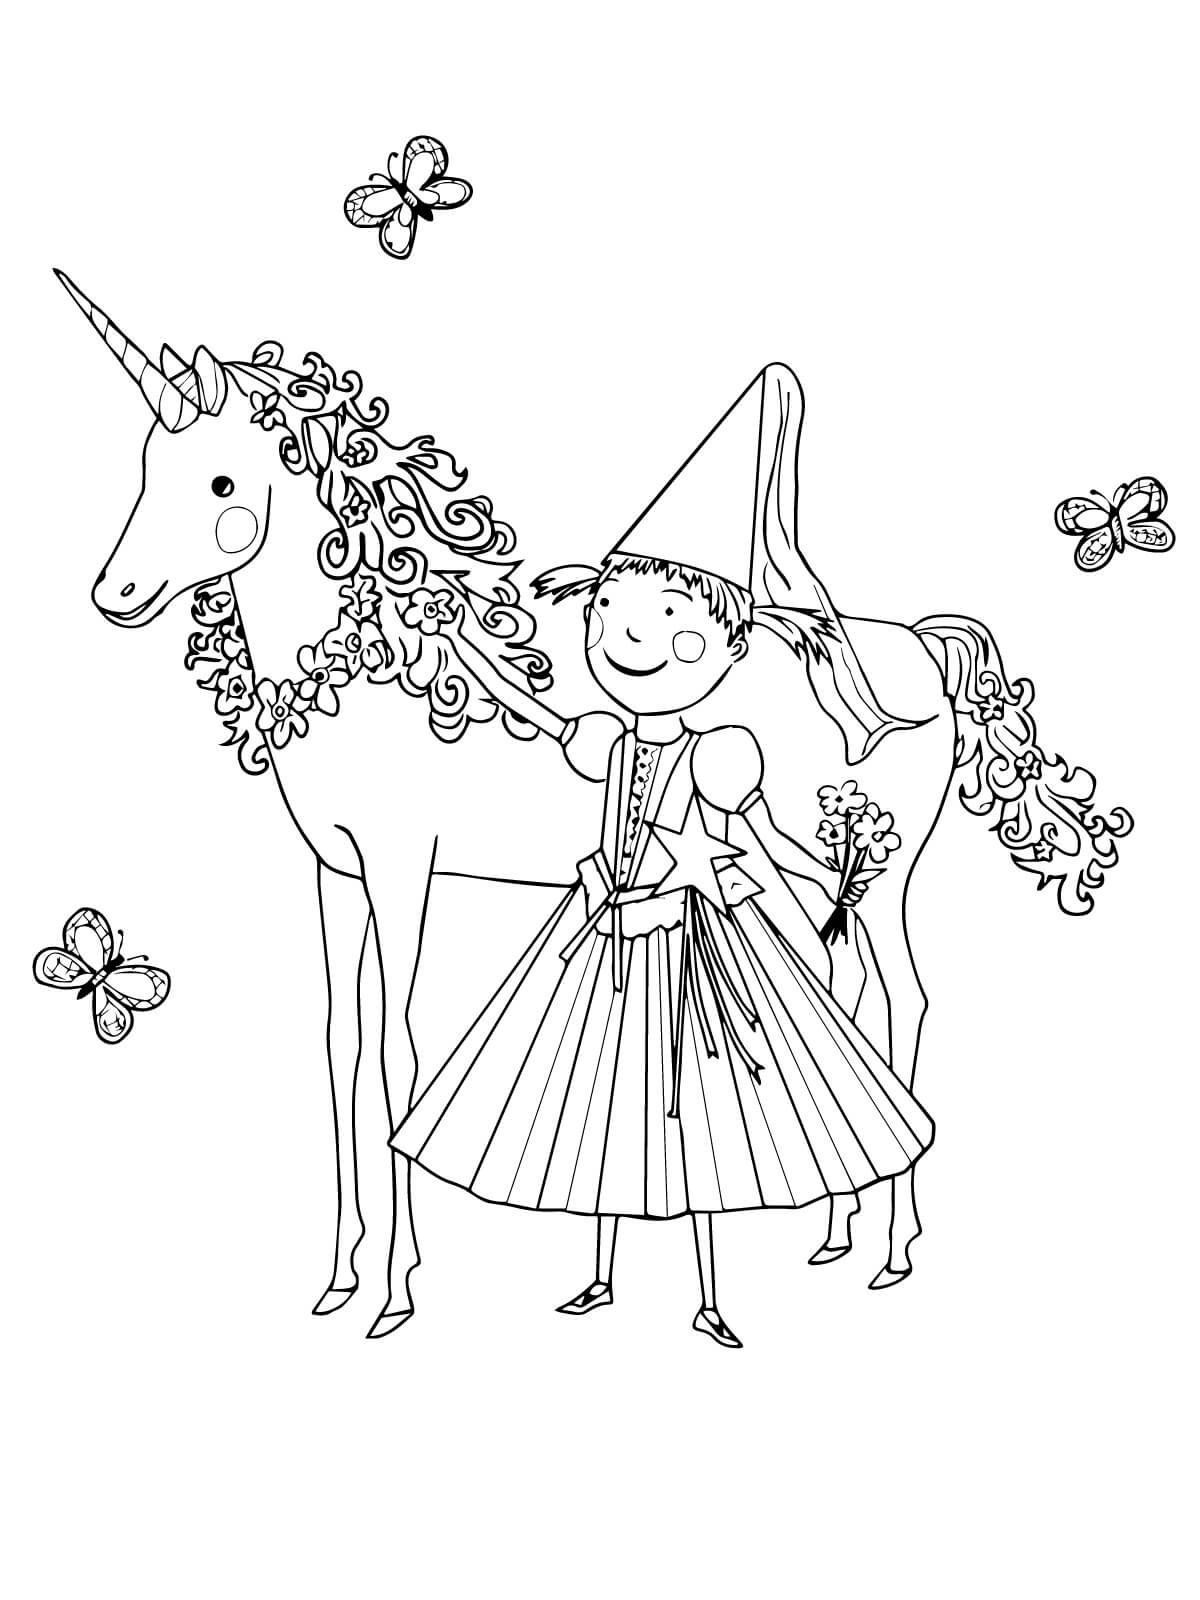 happy birthday coloring pages 01 | kids coloring | pinterest ... - Birthday Coloring Pages Girls